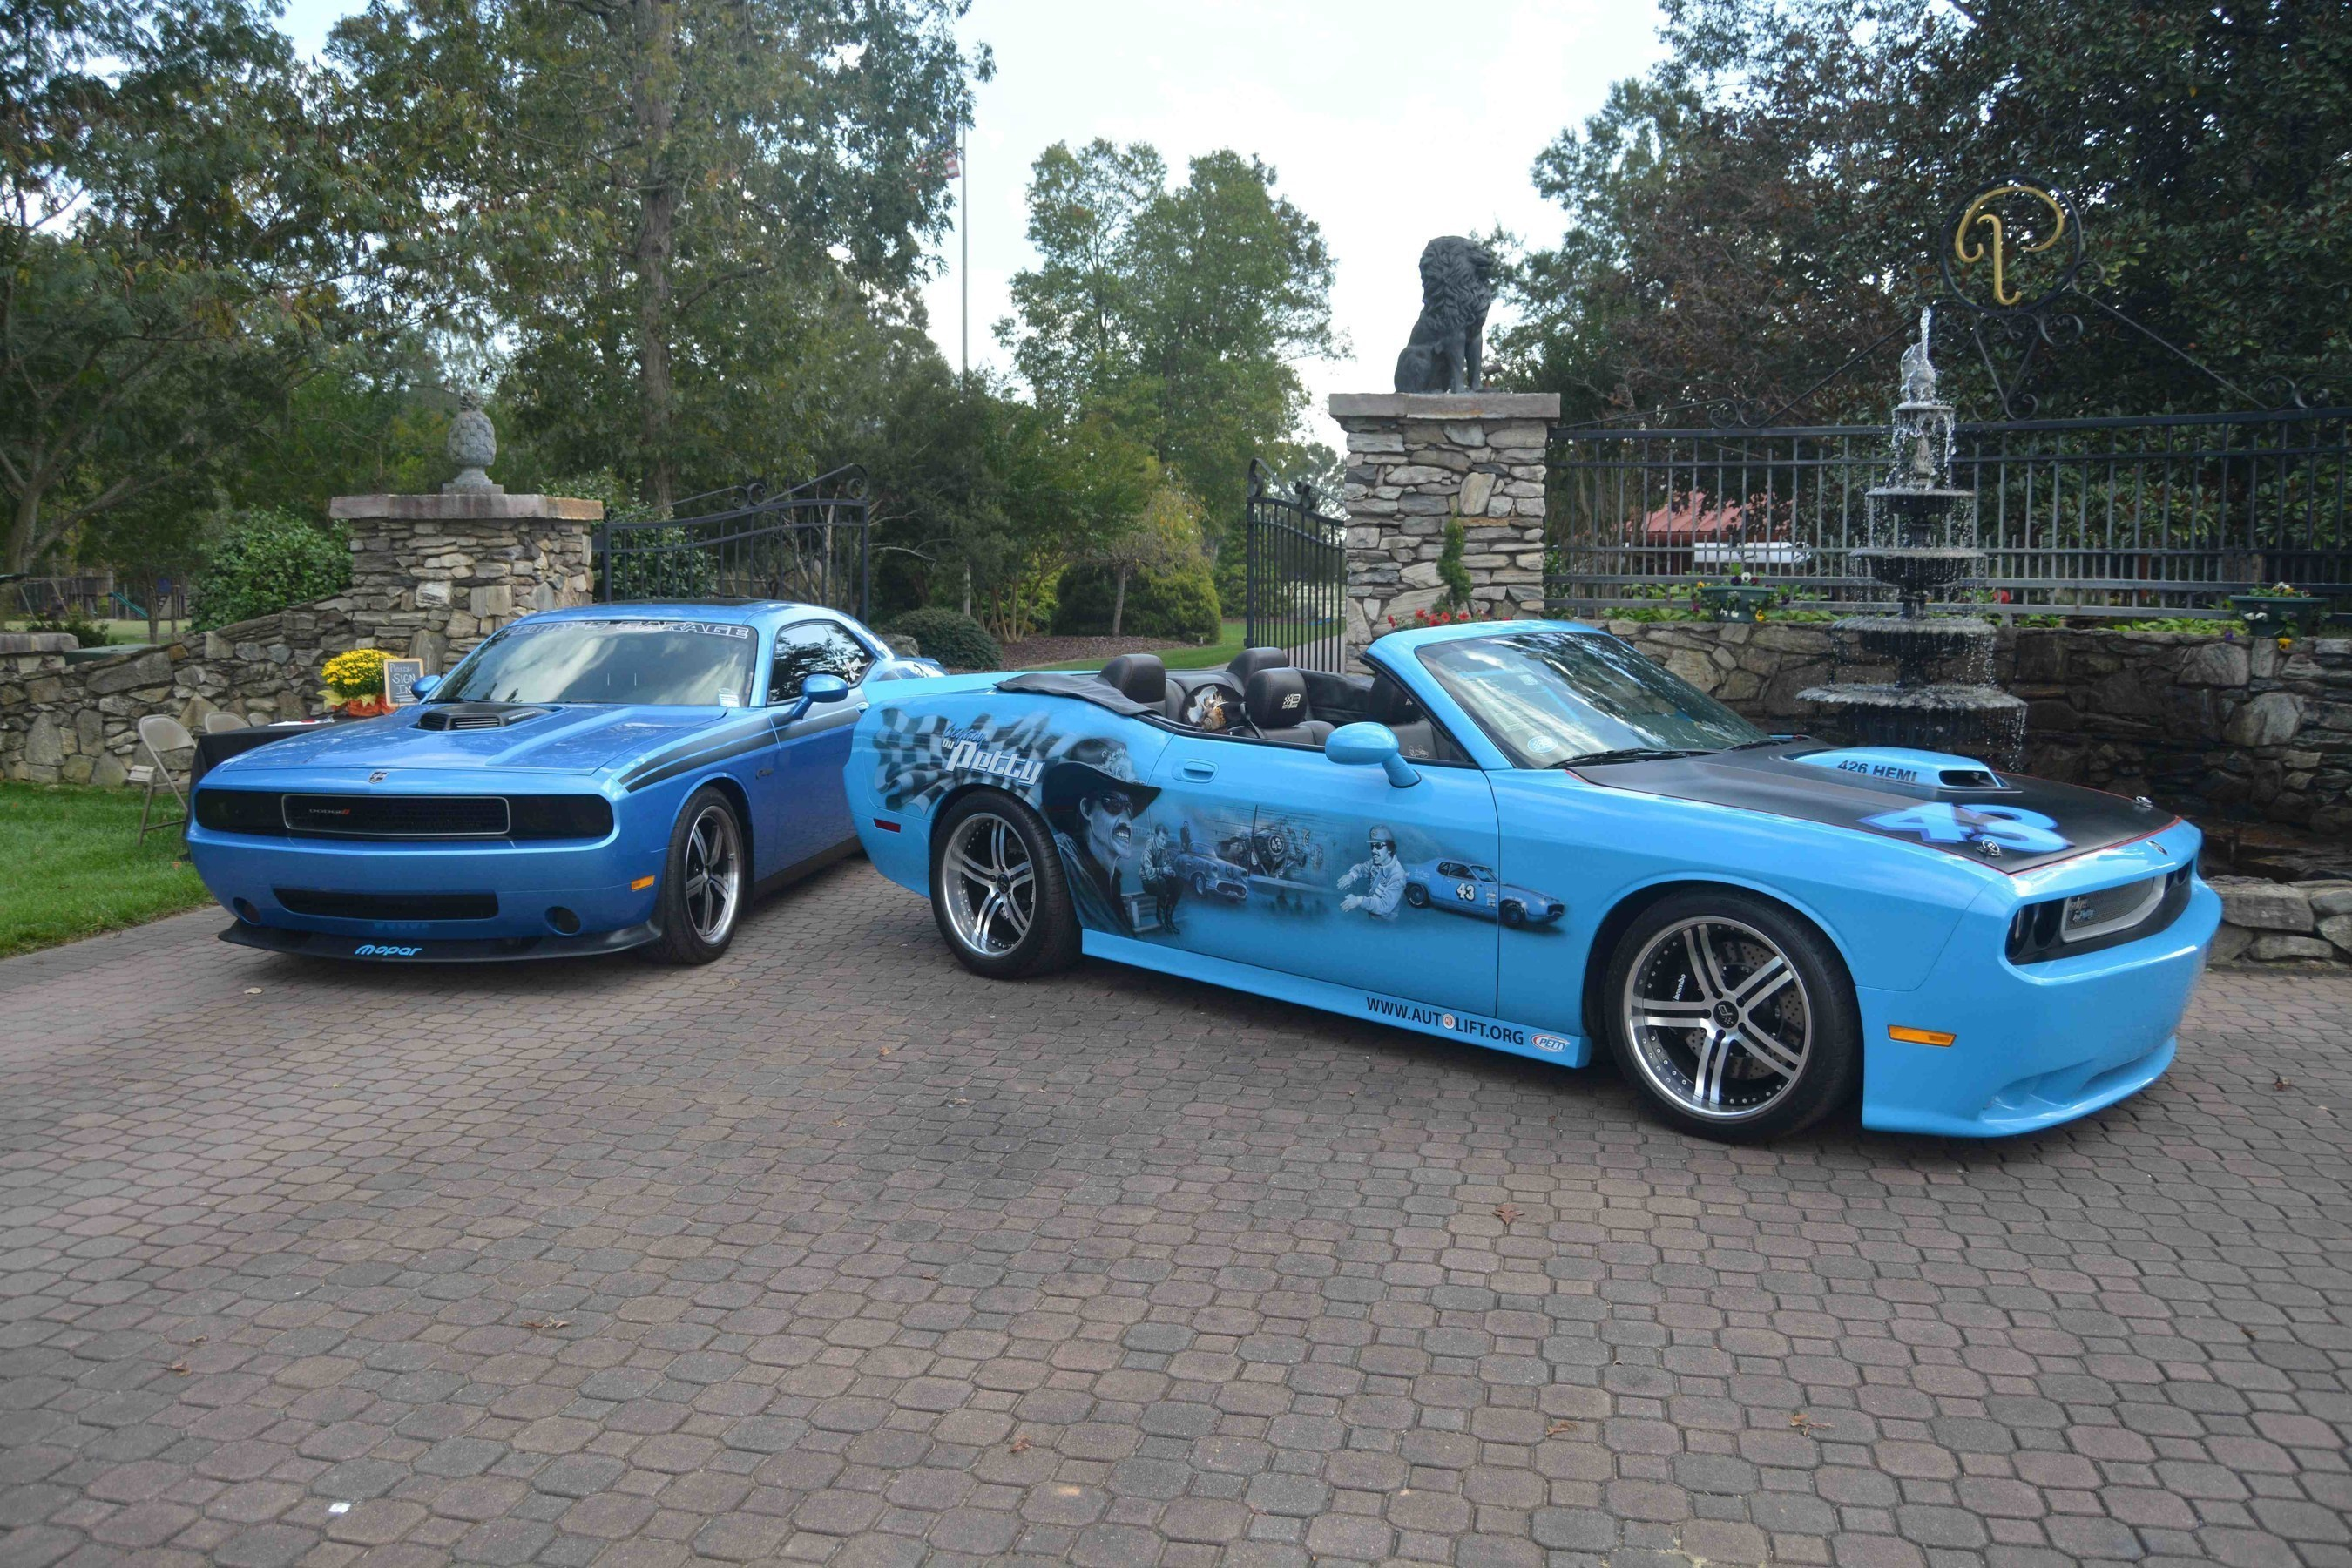 Register Now For Pettys Garage Car Show To Get VIP Cookout Tickets - Car shows near me now